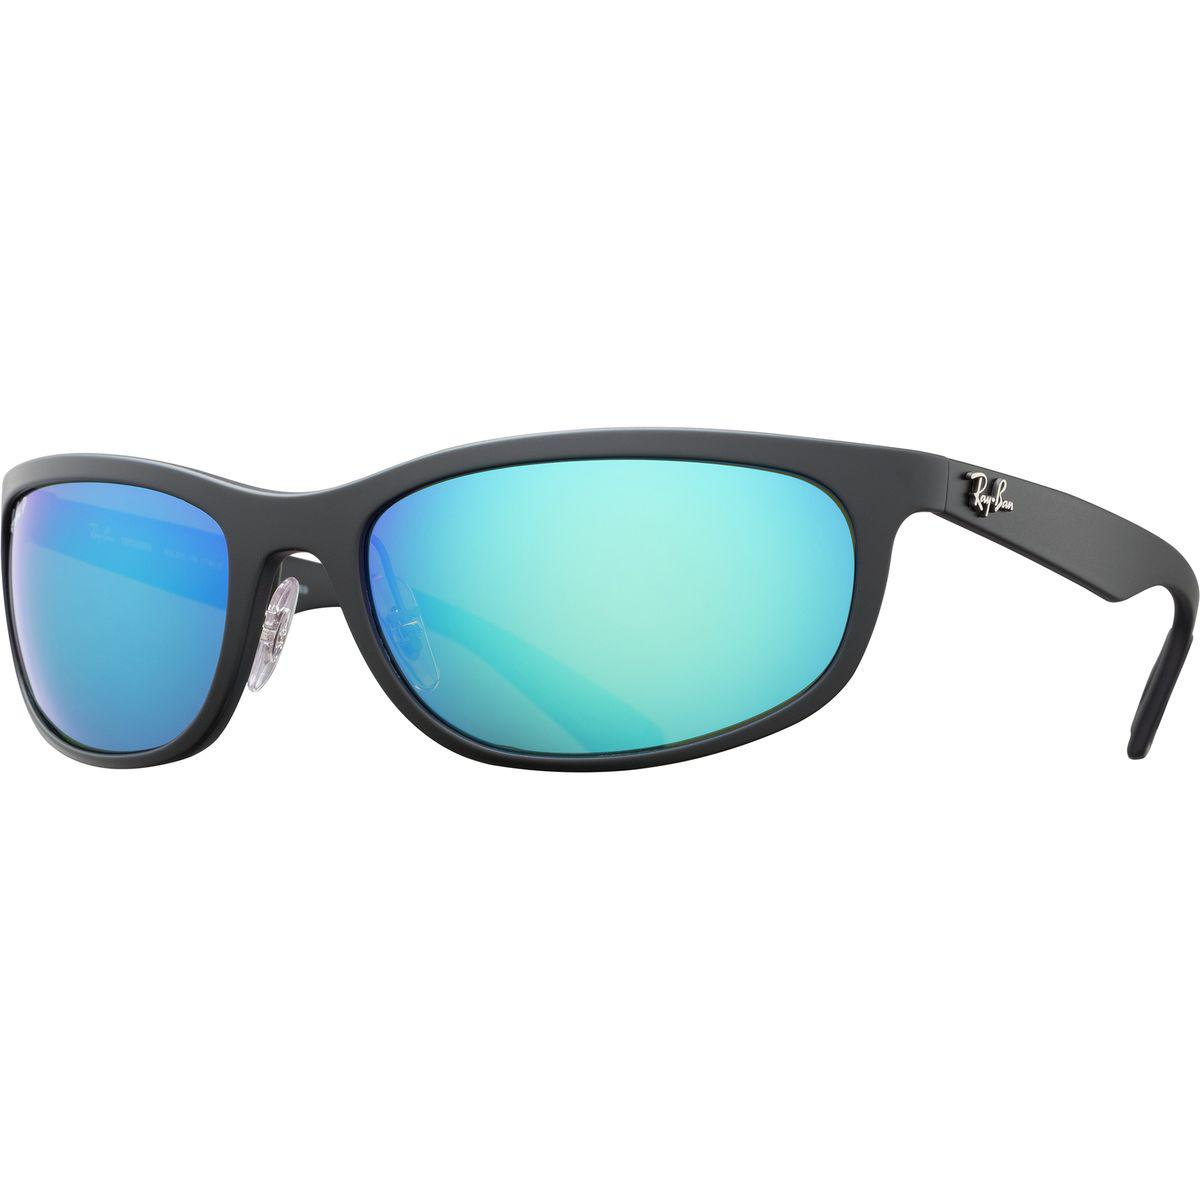 ad10795a5a promo code for lyst ray ban rb4265 chromance sunglasses polarized in blue  for men 97614 44b65